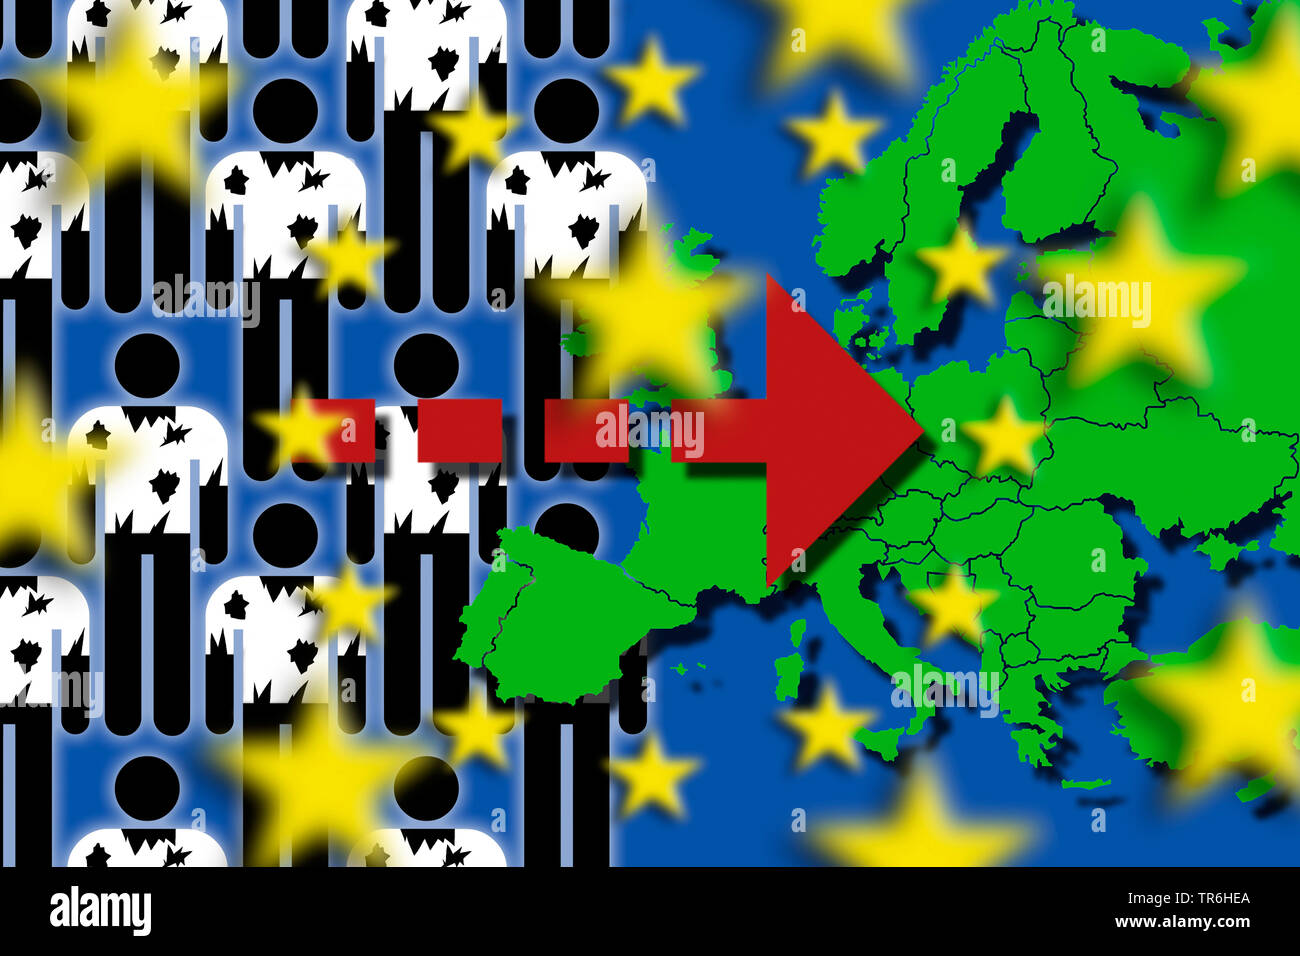 refugees and europe flag, influx of refugees to Europa, Germany - Stock Image